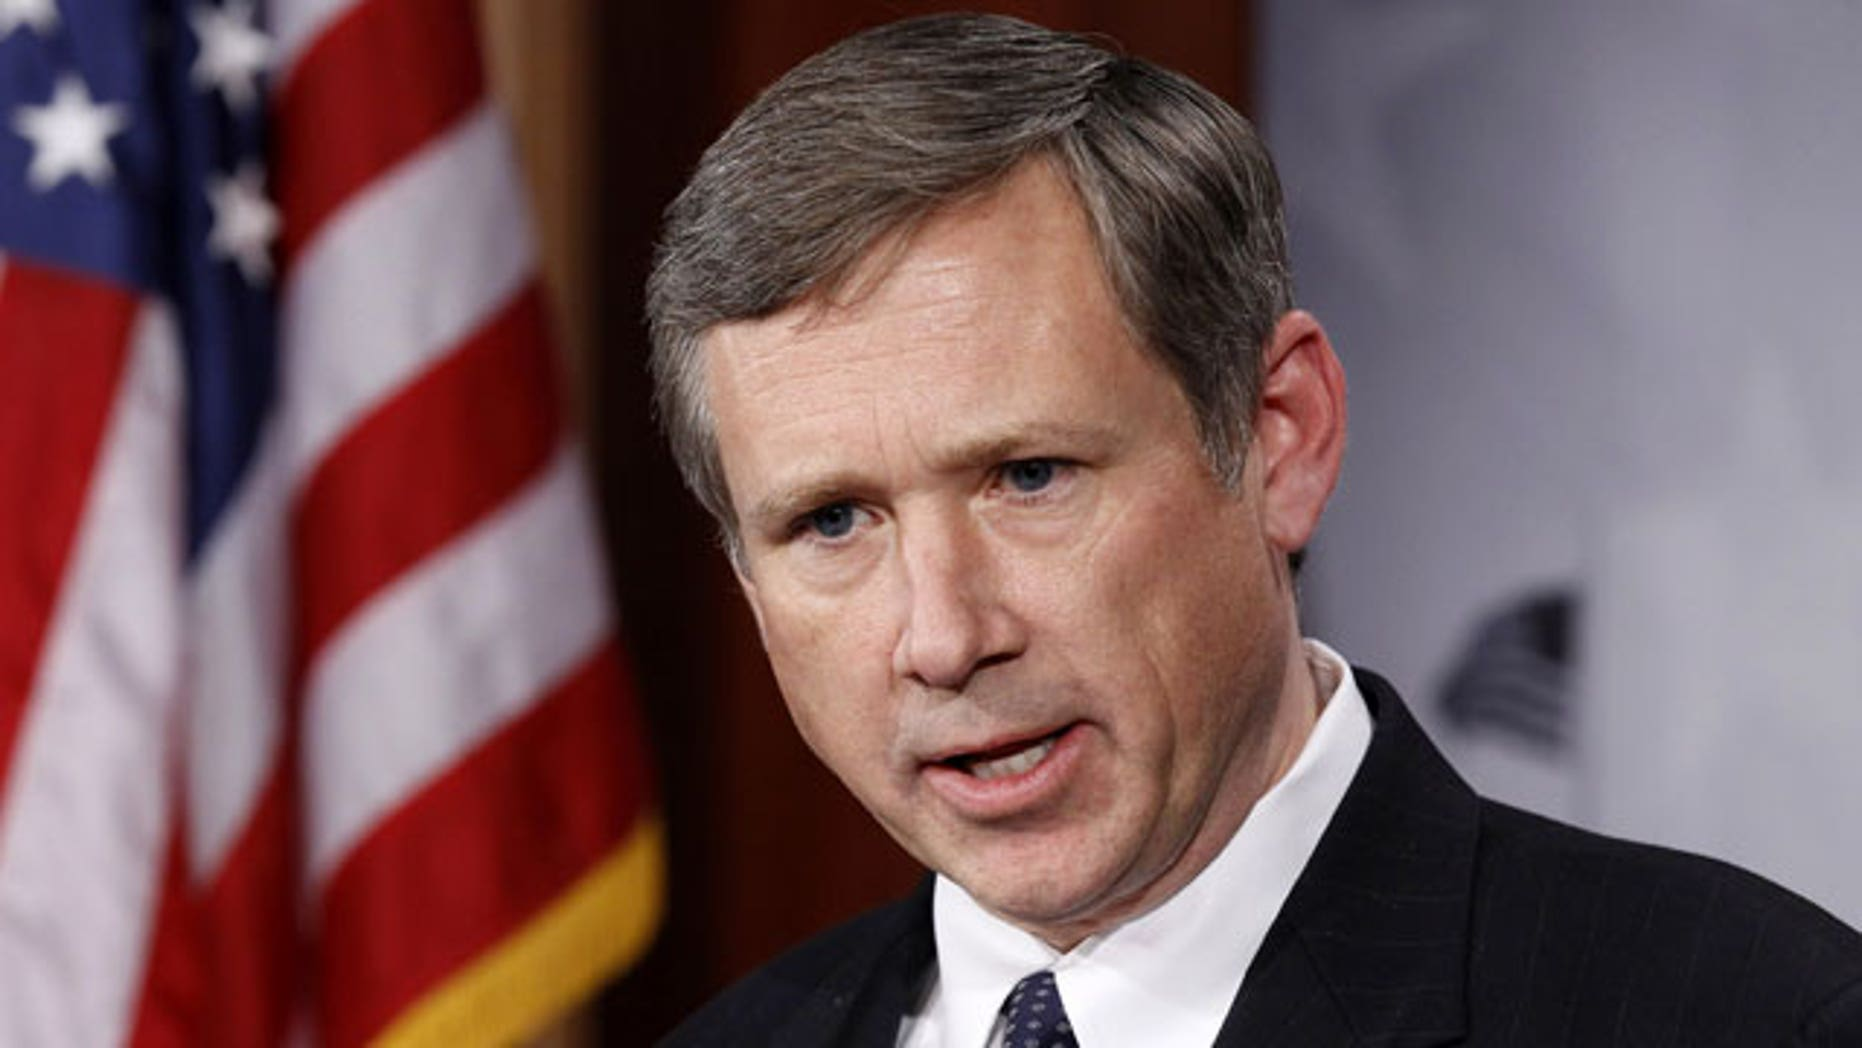 In this Dec. 16, 2010, file photo, Sen. Mark Kirk, R-Ill., talks to the media on Capitol Hill in Washington. Kirk is blocking President Barack Obama's nominee for ambassador to Russia over concerns that the U.S. might provide Moscow with sensitive missile defense information.